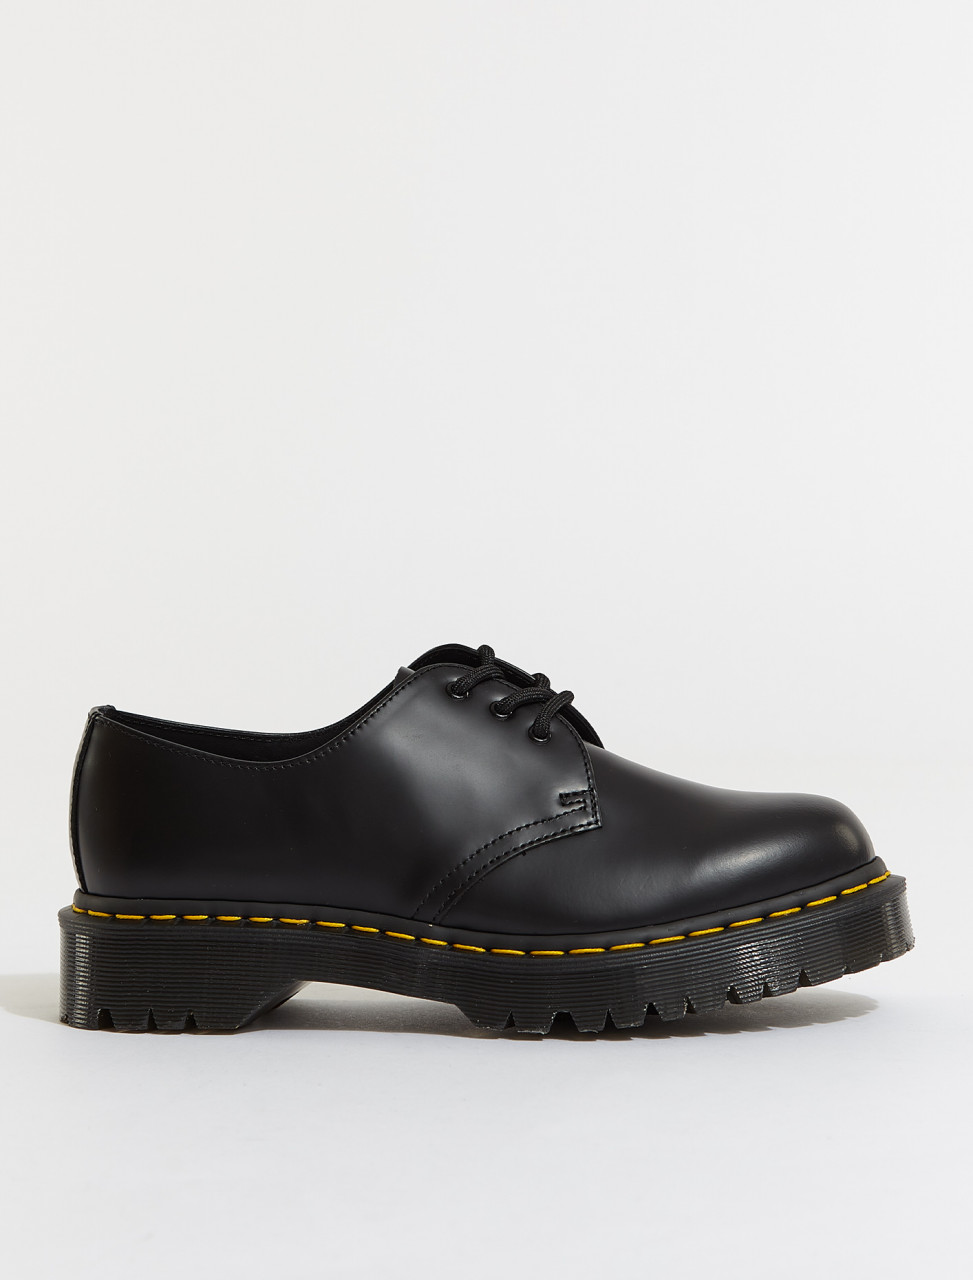 123-21084001 DR MARTENS 21084001 1461 BEX SHOE BLACK SMOOTH